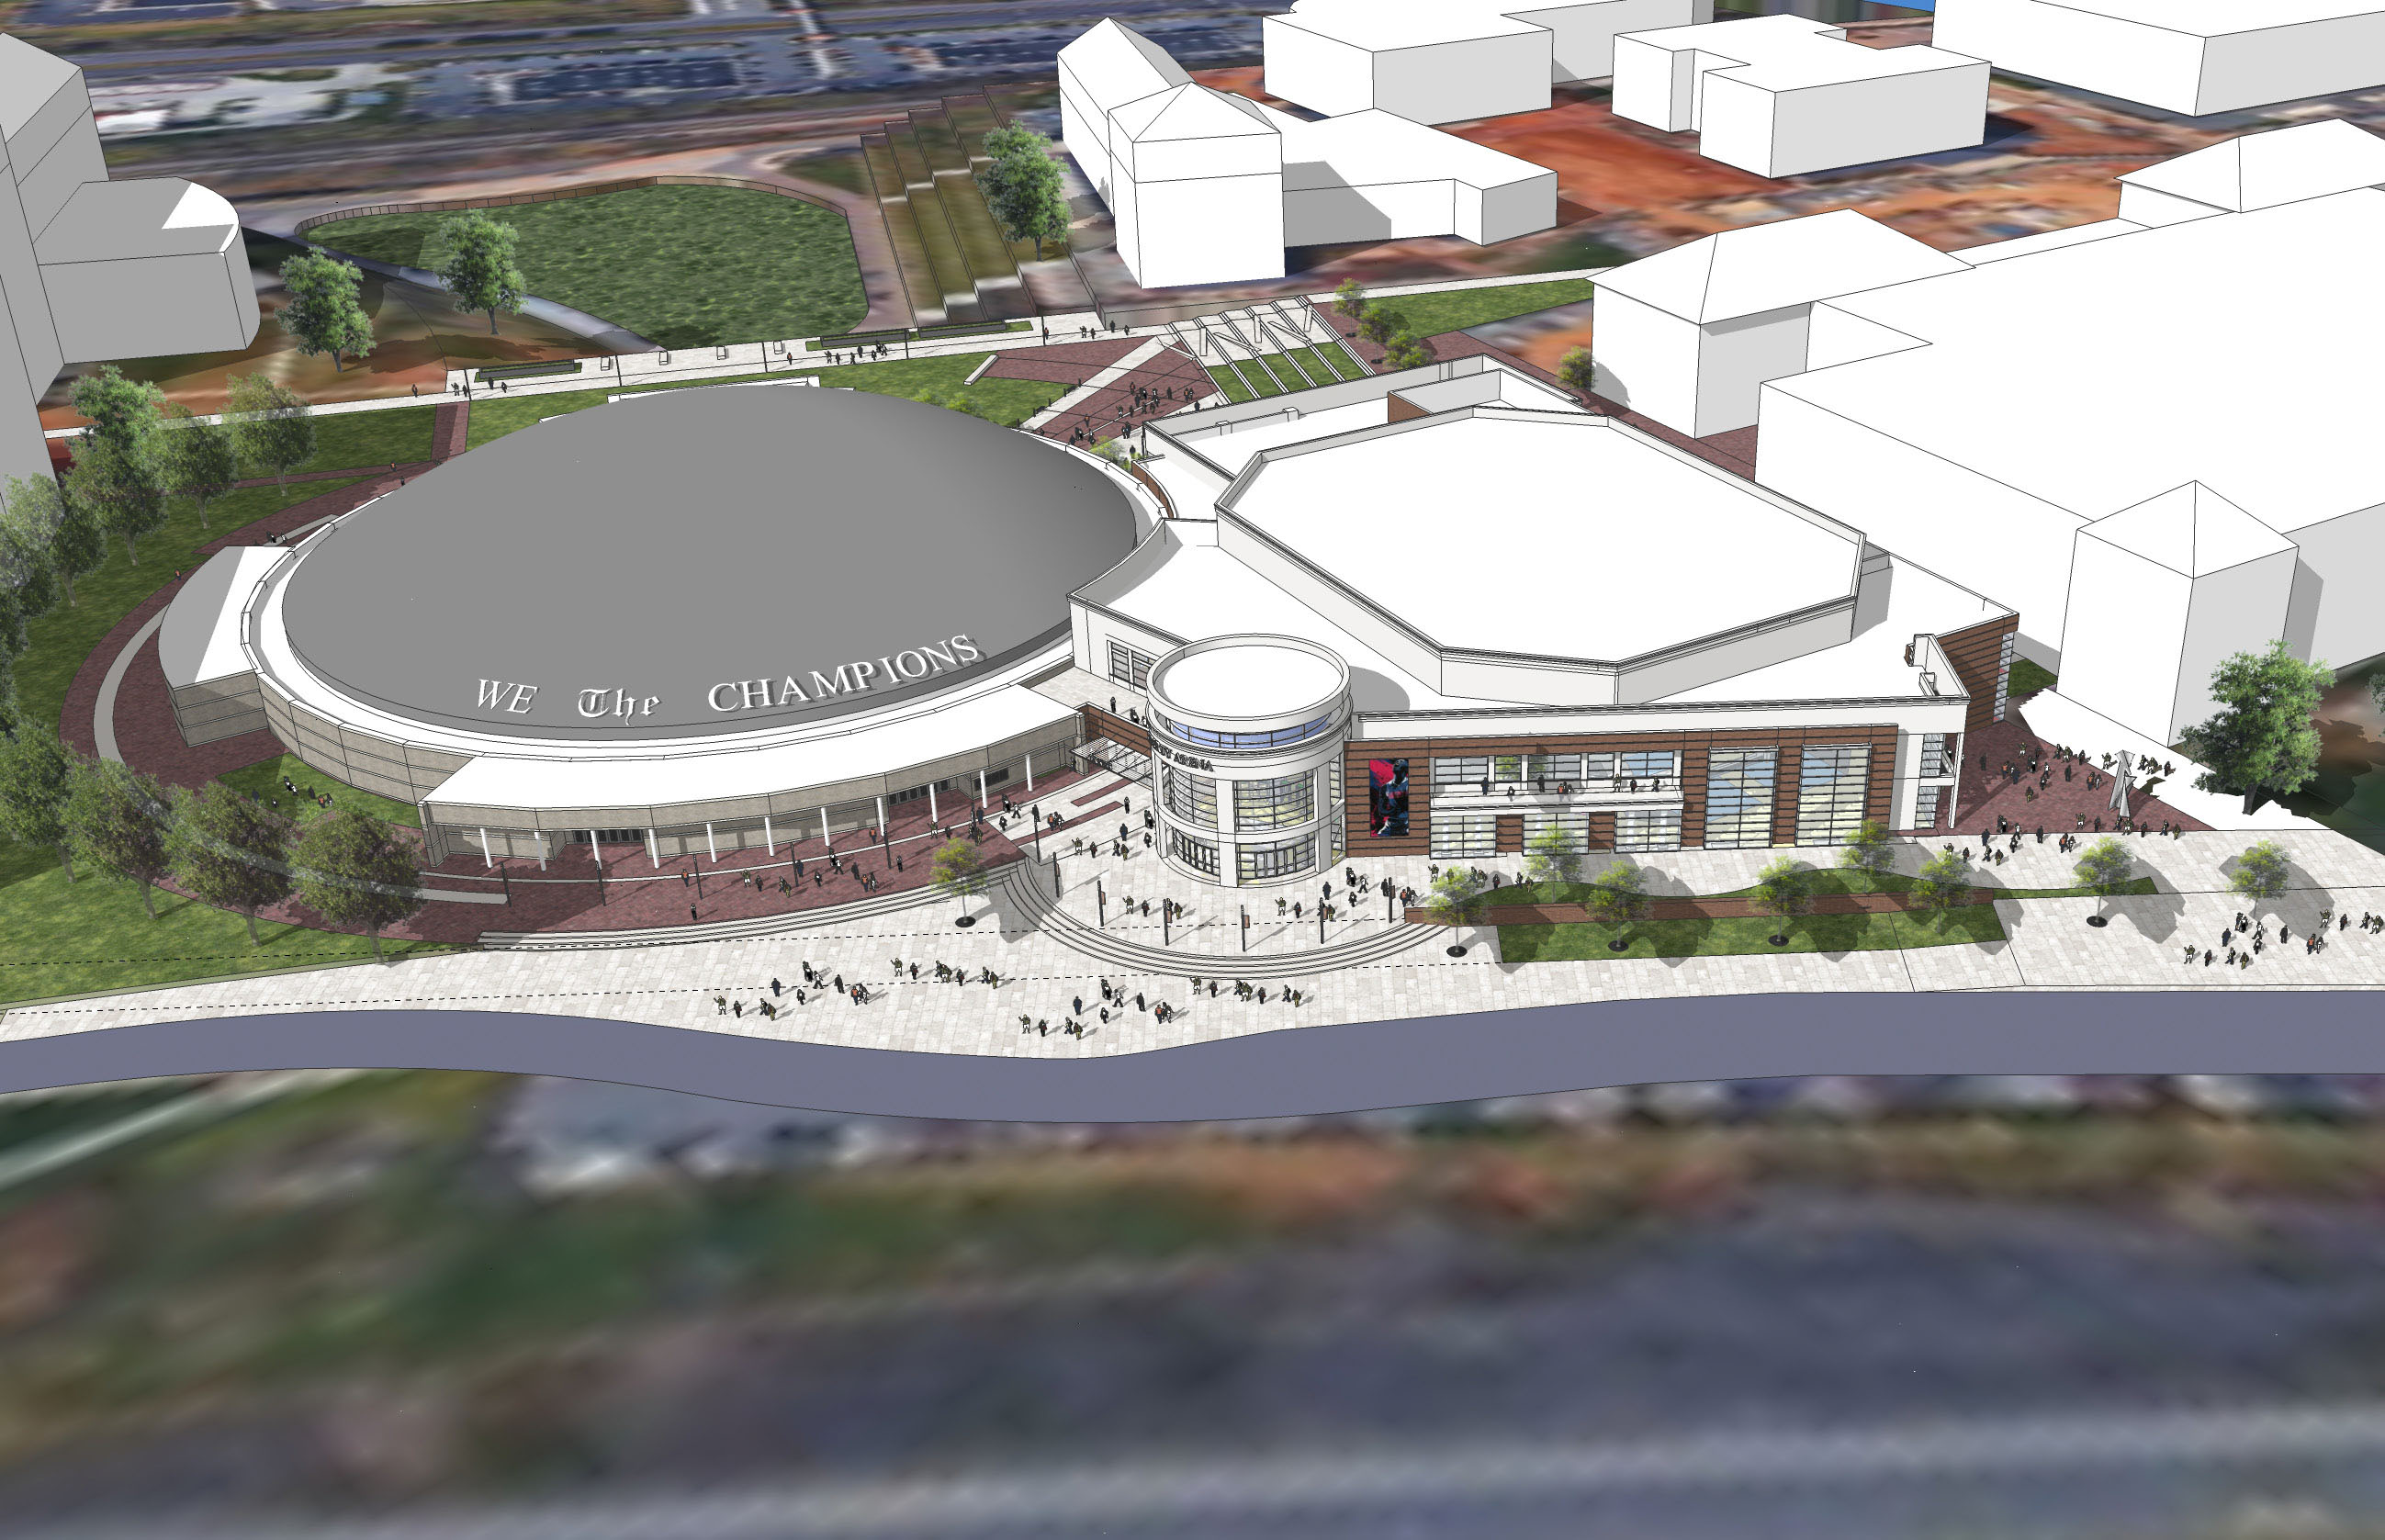 New multiuse arena to be built next to Vines Center | Liberty University